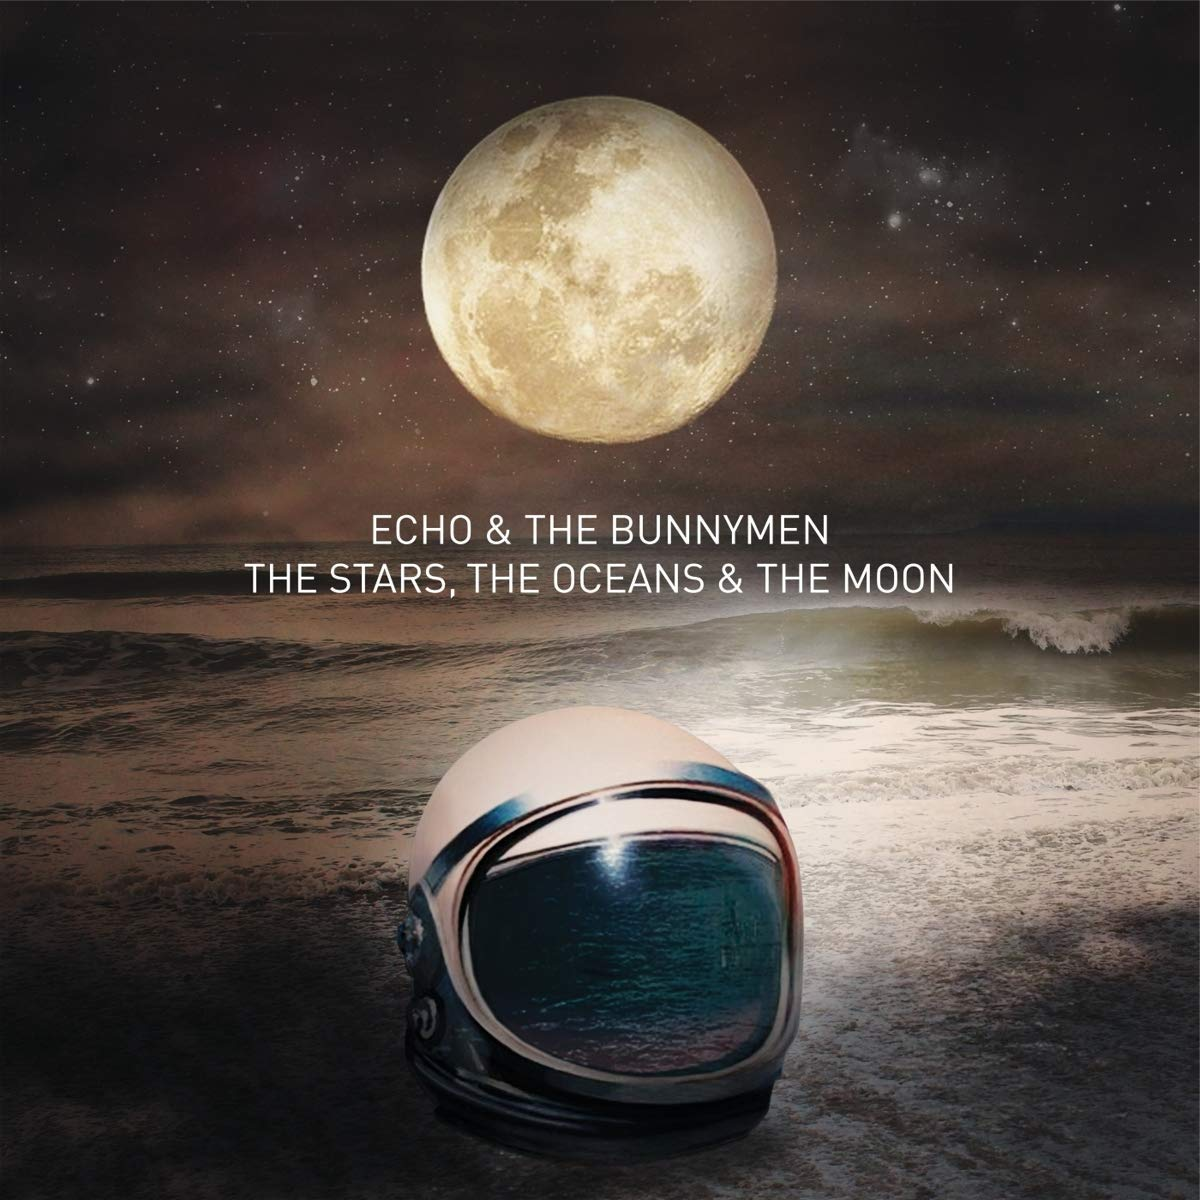 Echo & The Bunnymen - The Stars, The Oceans & The Moon [Indie Exclusive LP]